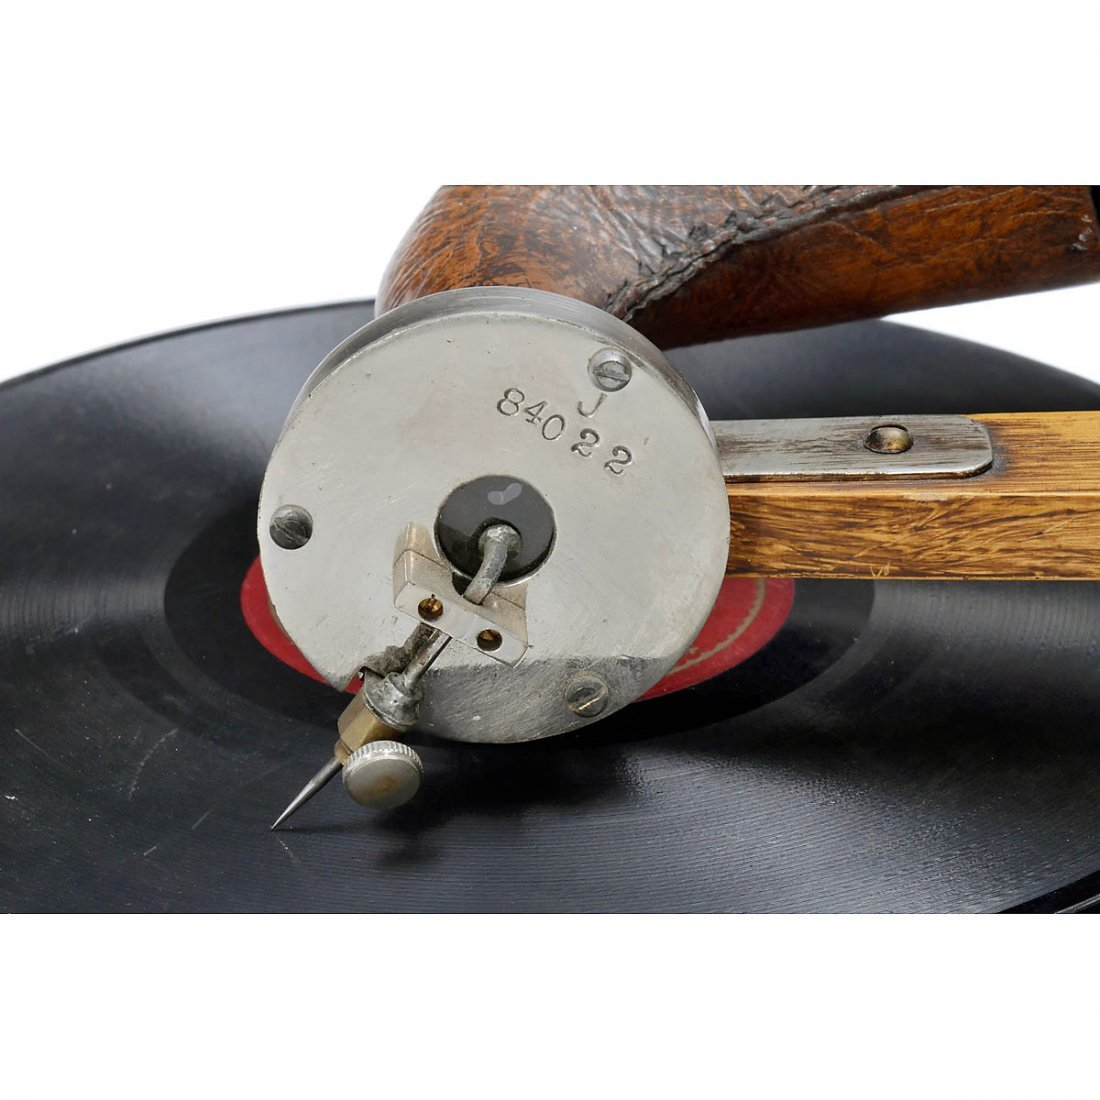 Emile Berliner-Style Hand-Cranked Gramophone - 4